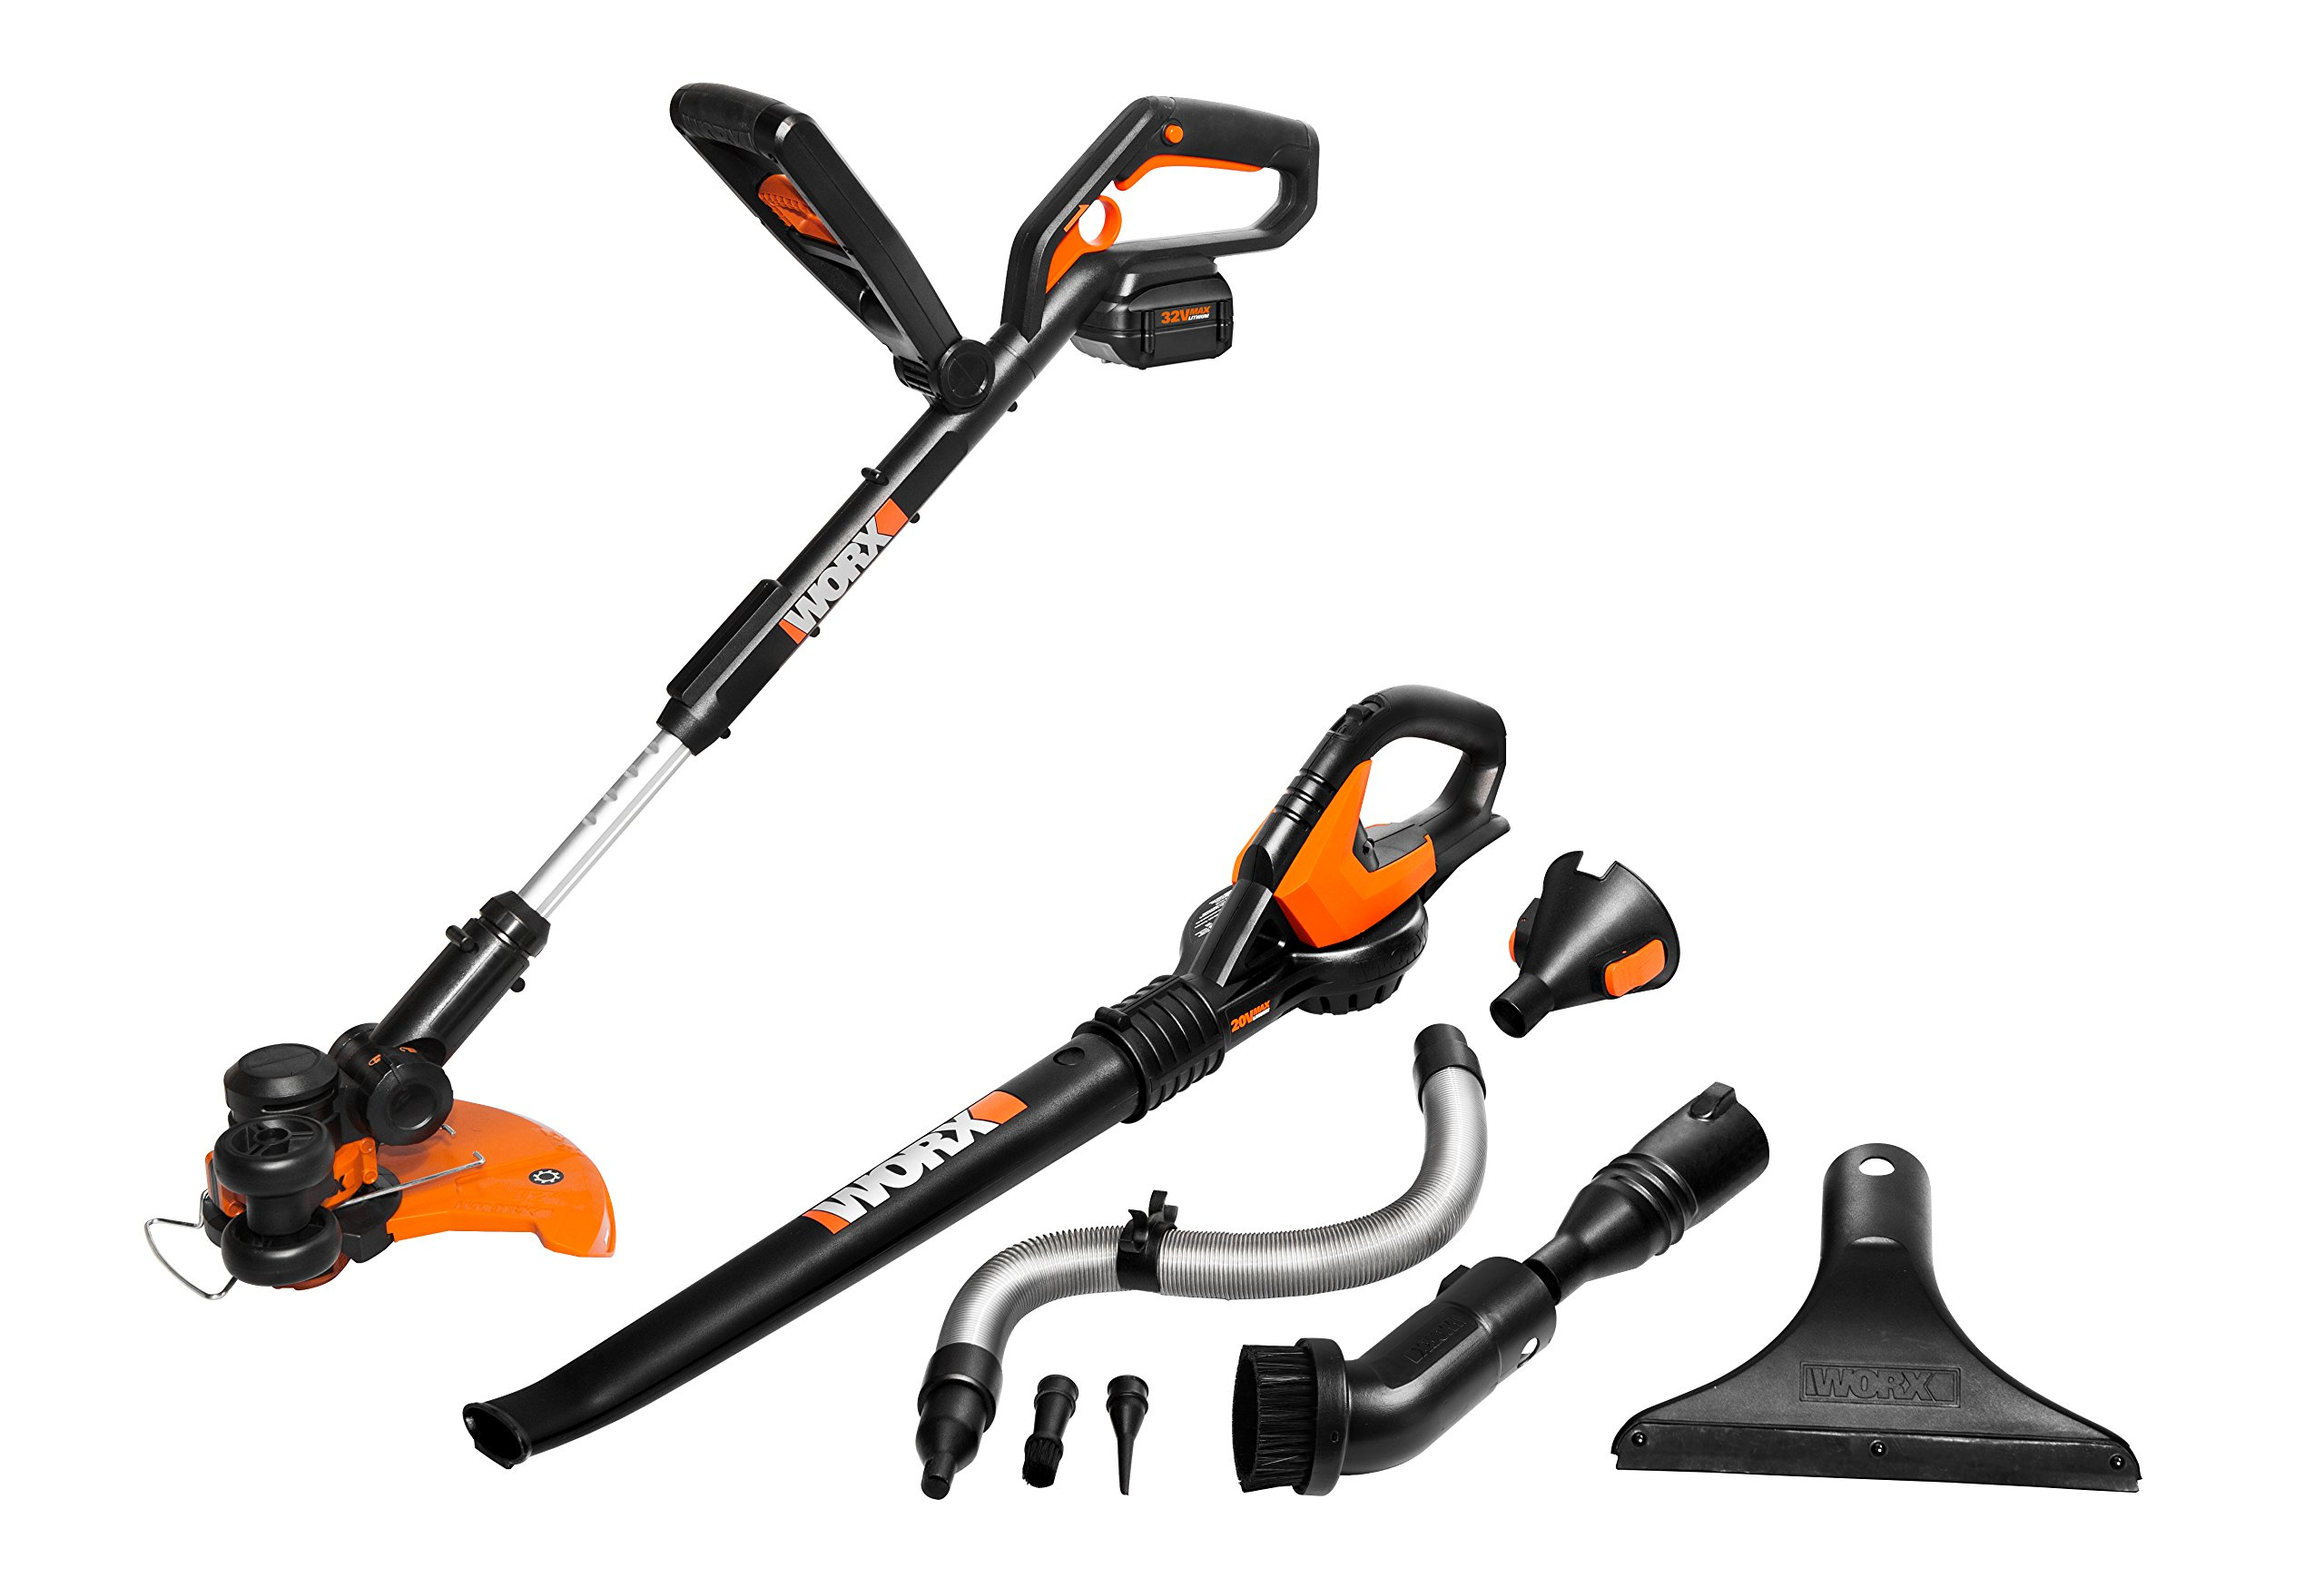 Worx WG924.1 GT 2.0 & AIR 32V Cordless String Trimmer & Leaf Blower/Sweeper Combo Kit